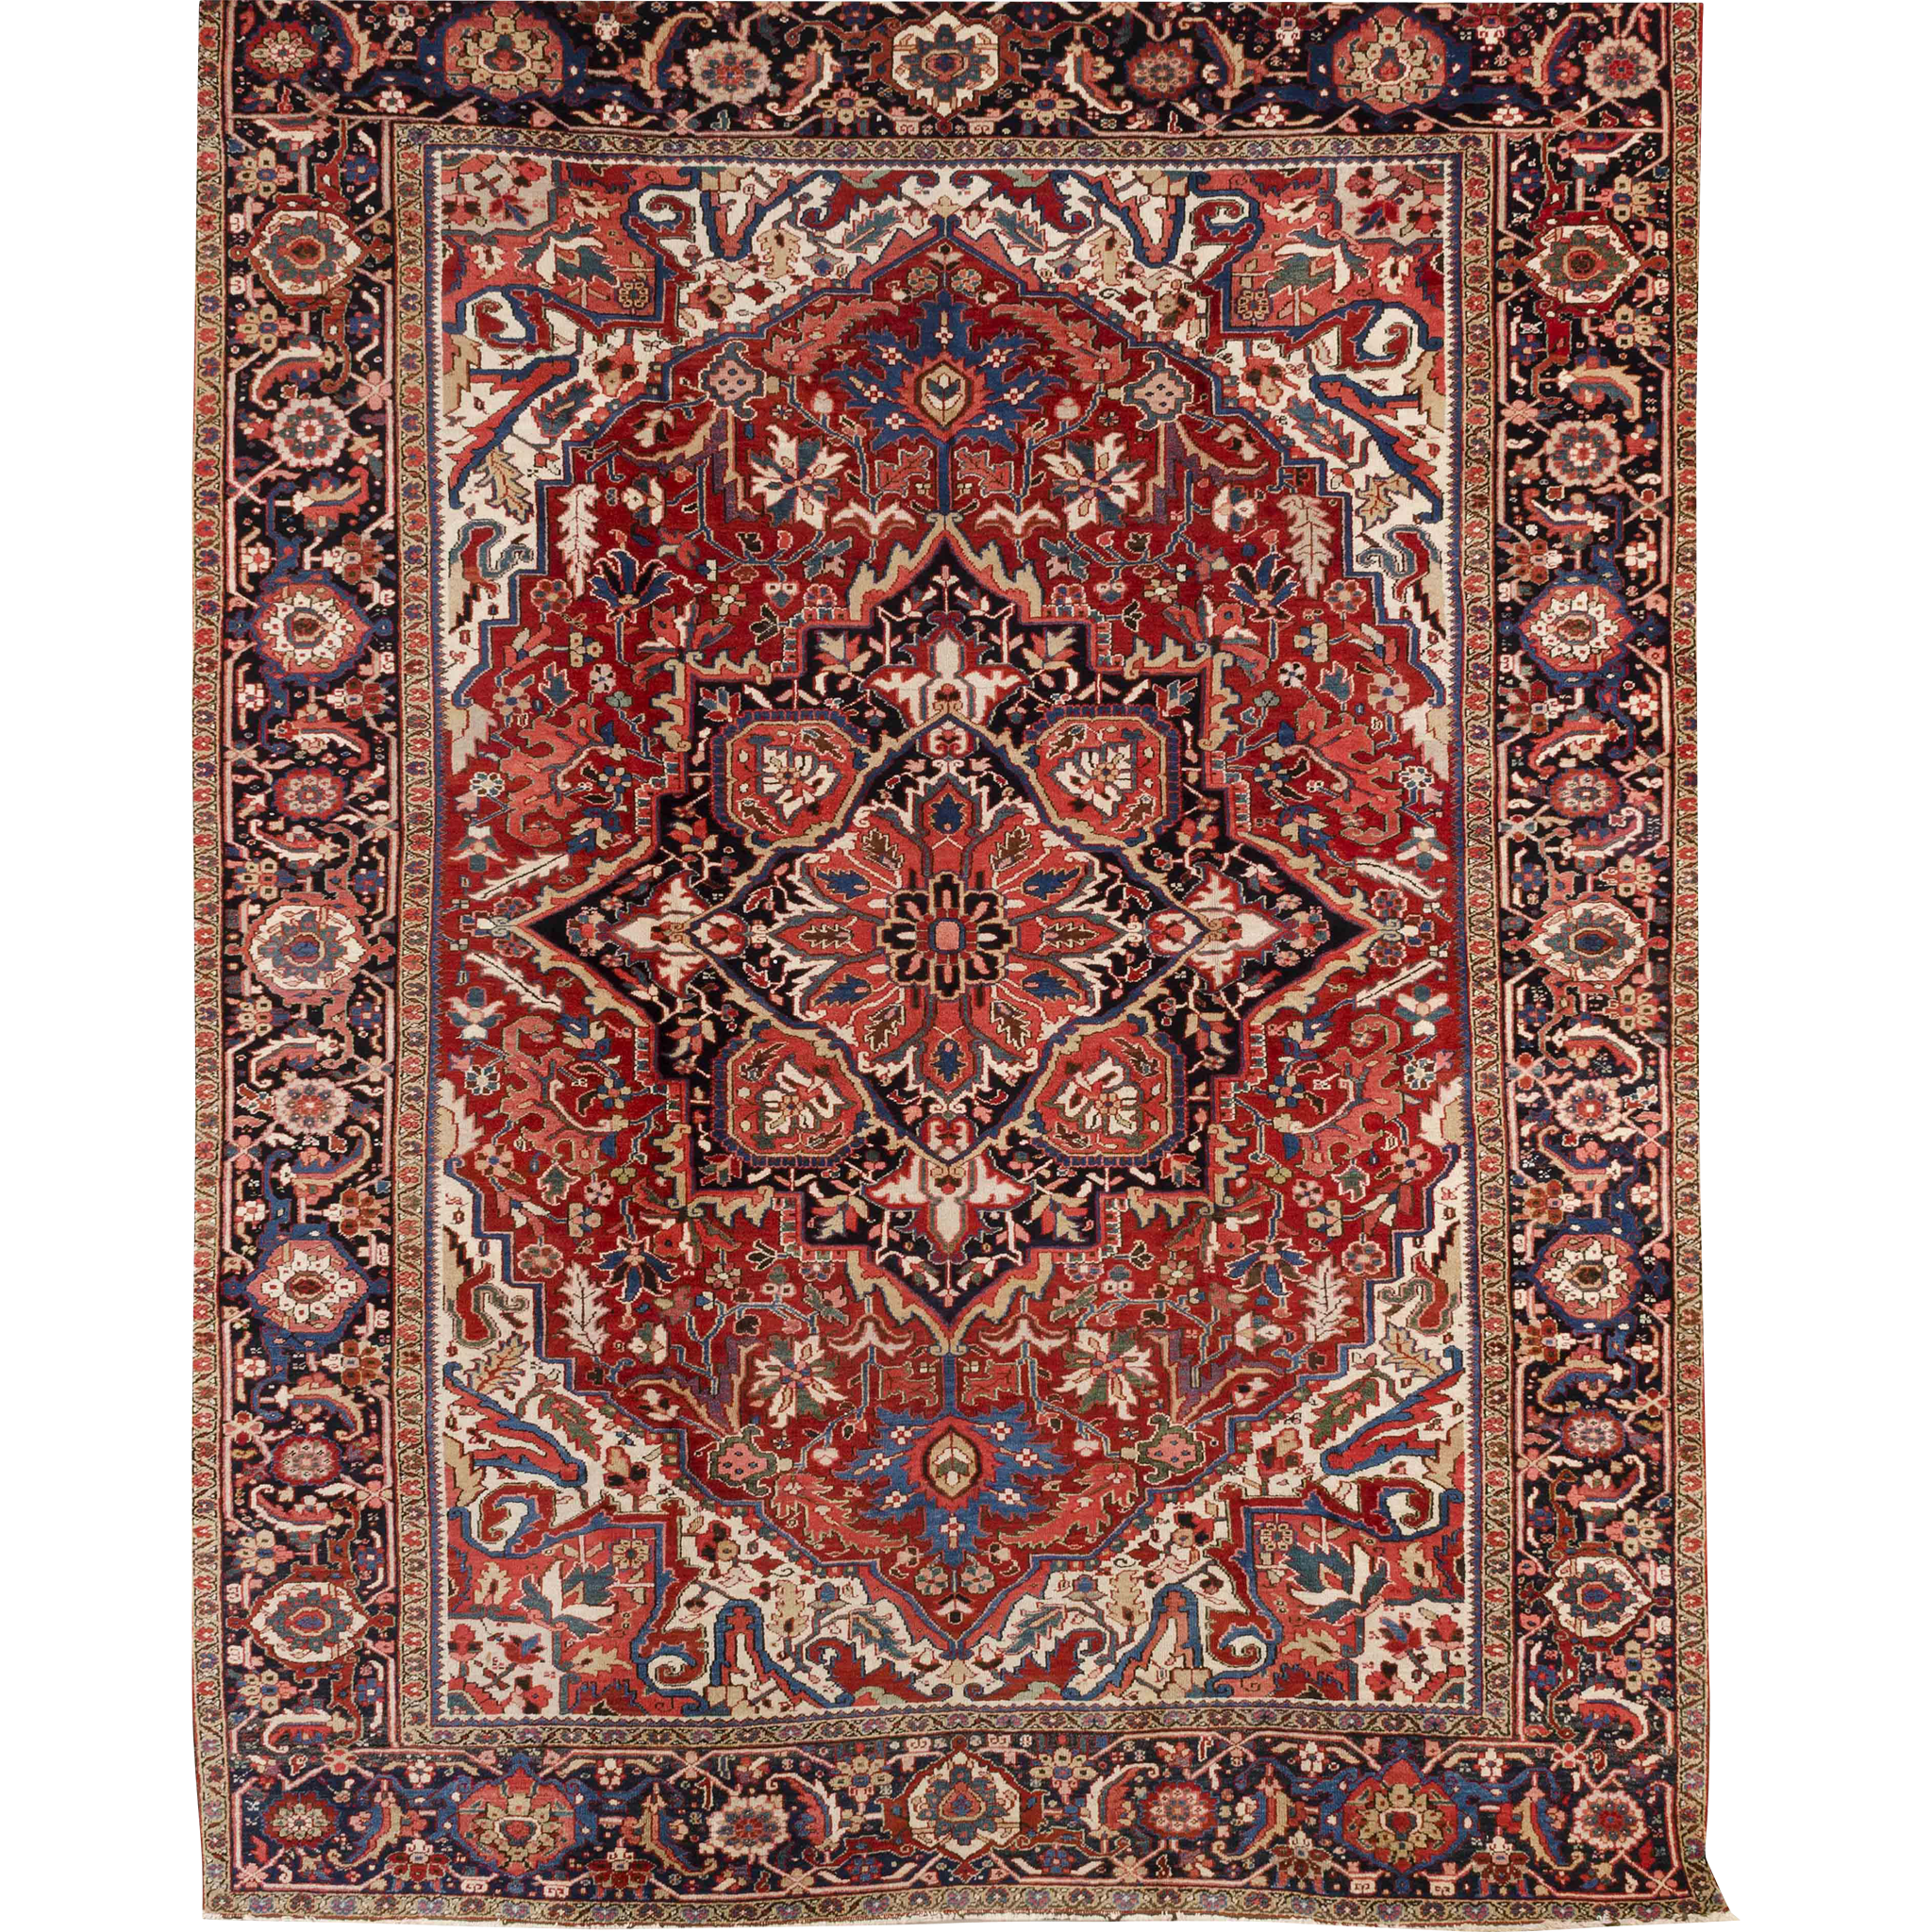 Exceptional 20th Century Heriz Room Size Oriental Rug